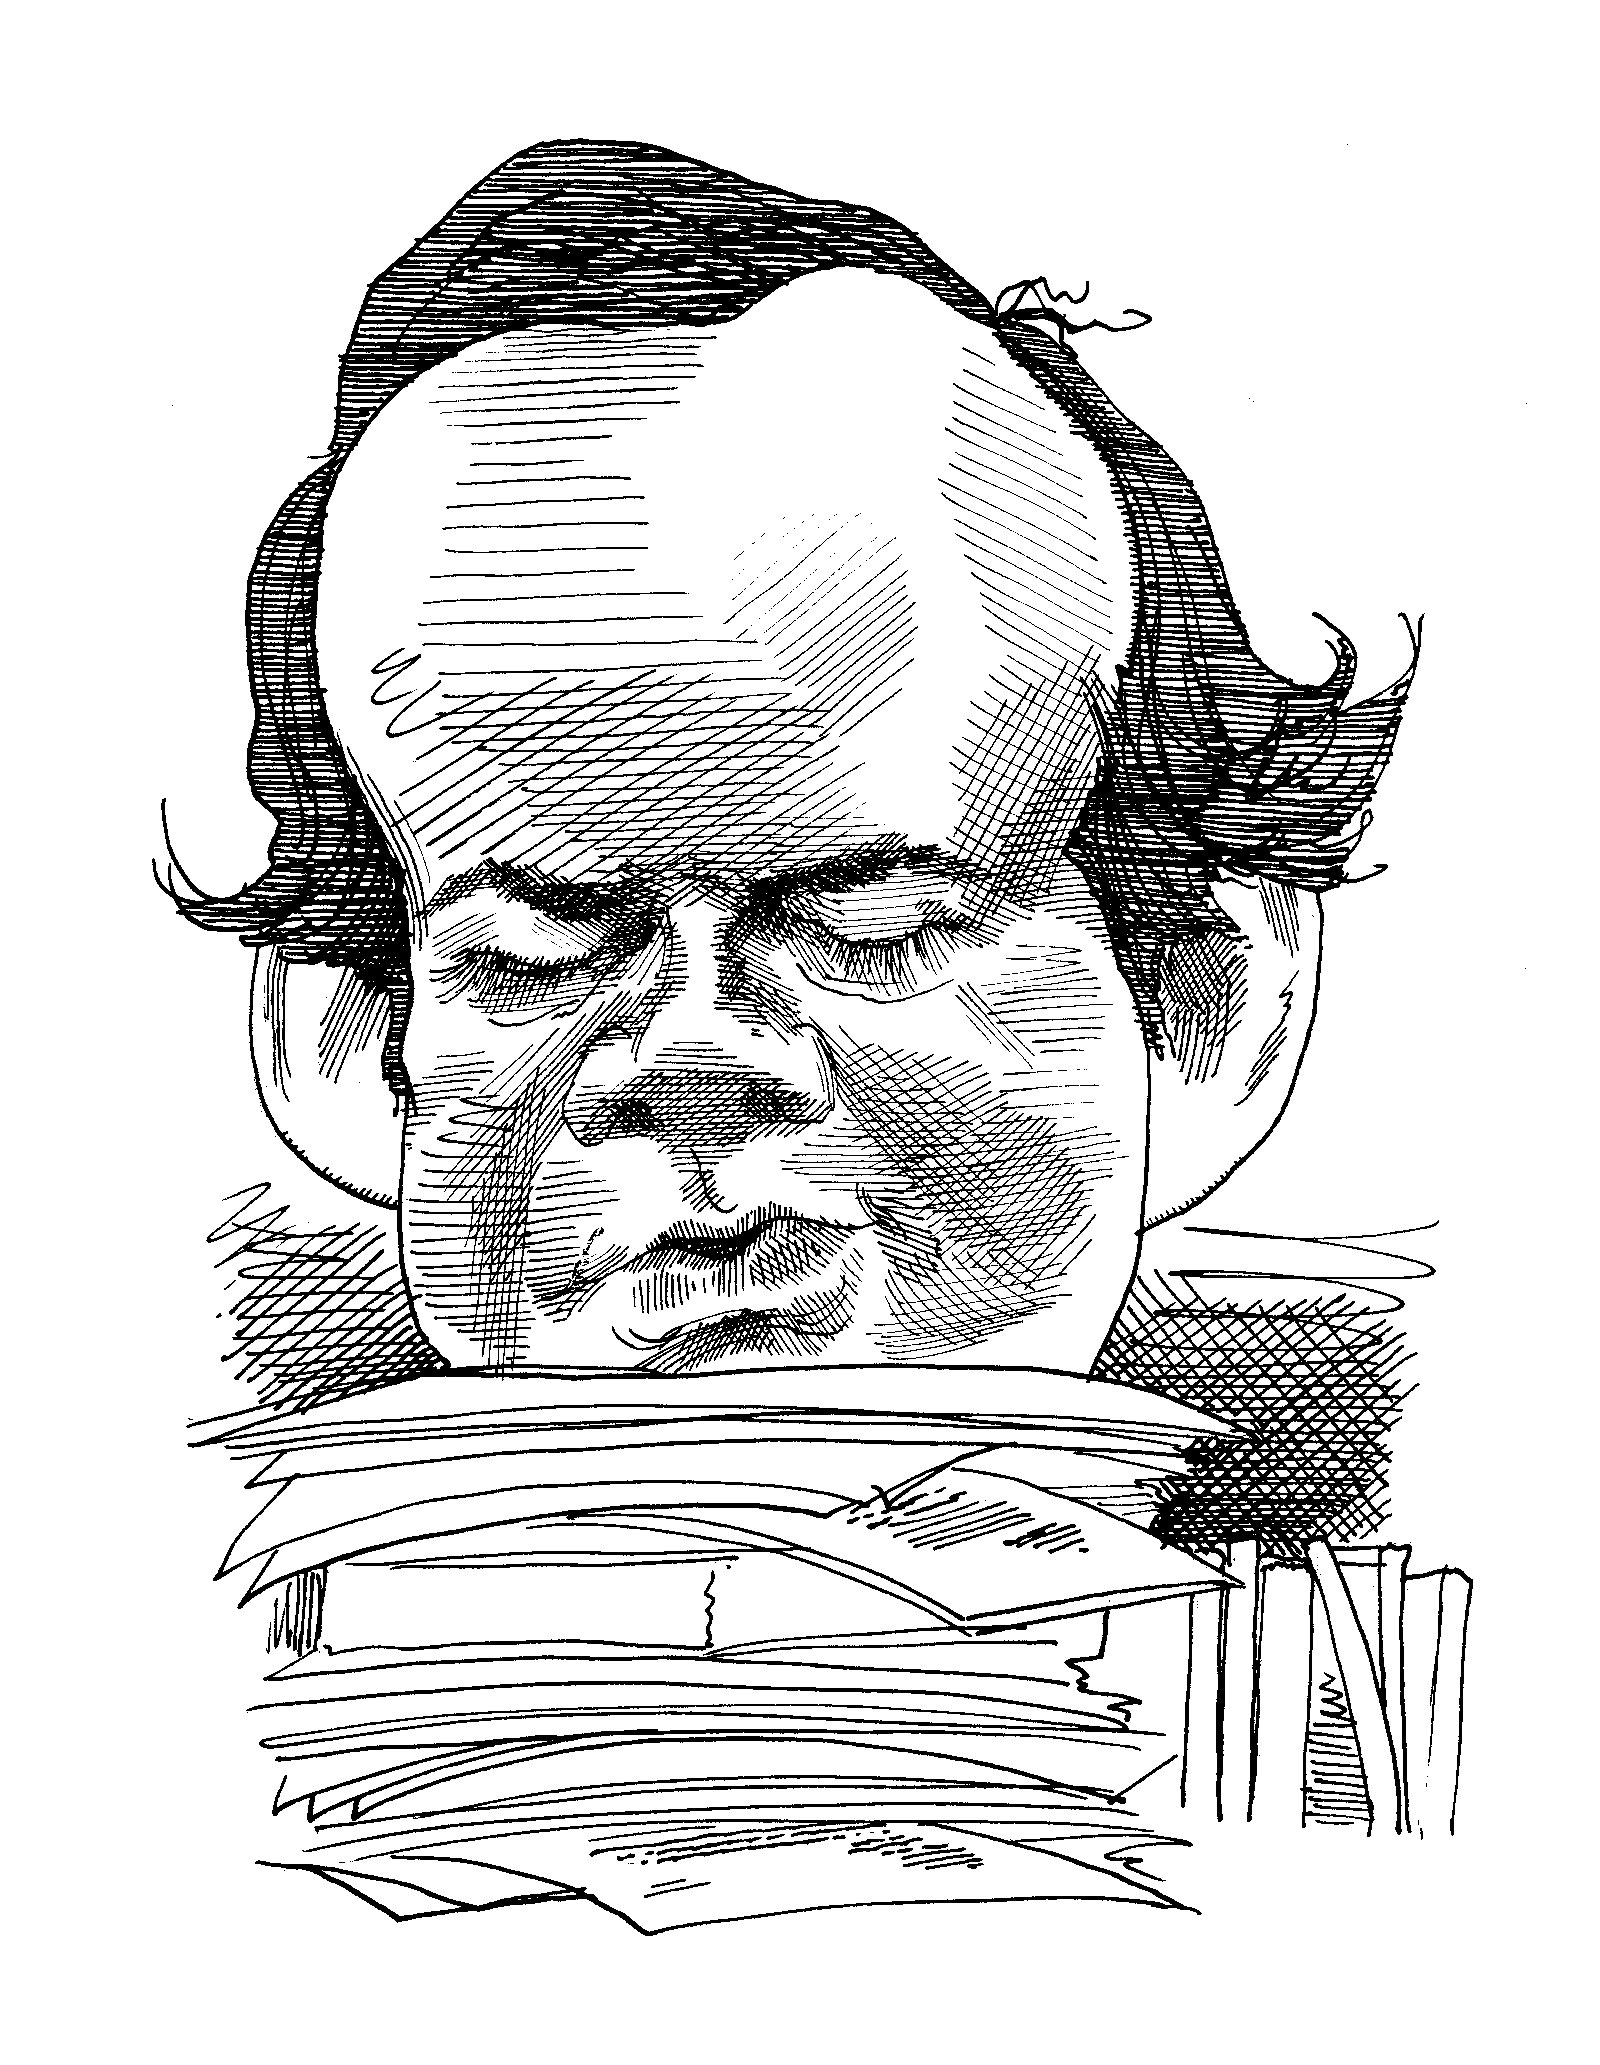 Robert Silvers; drawing by David Levine